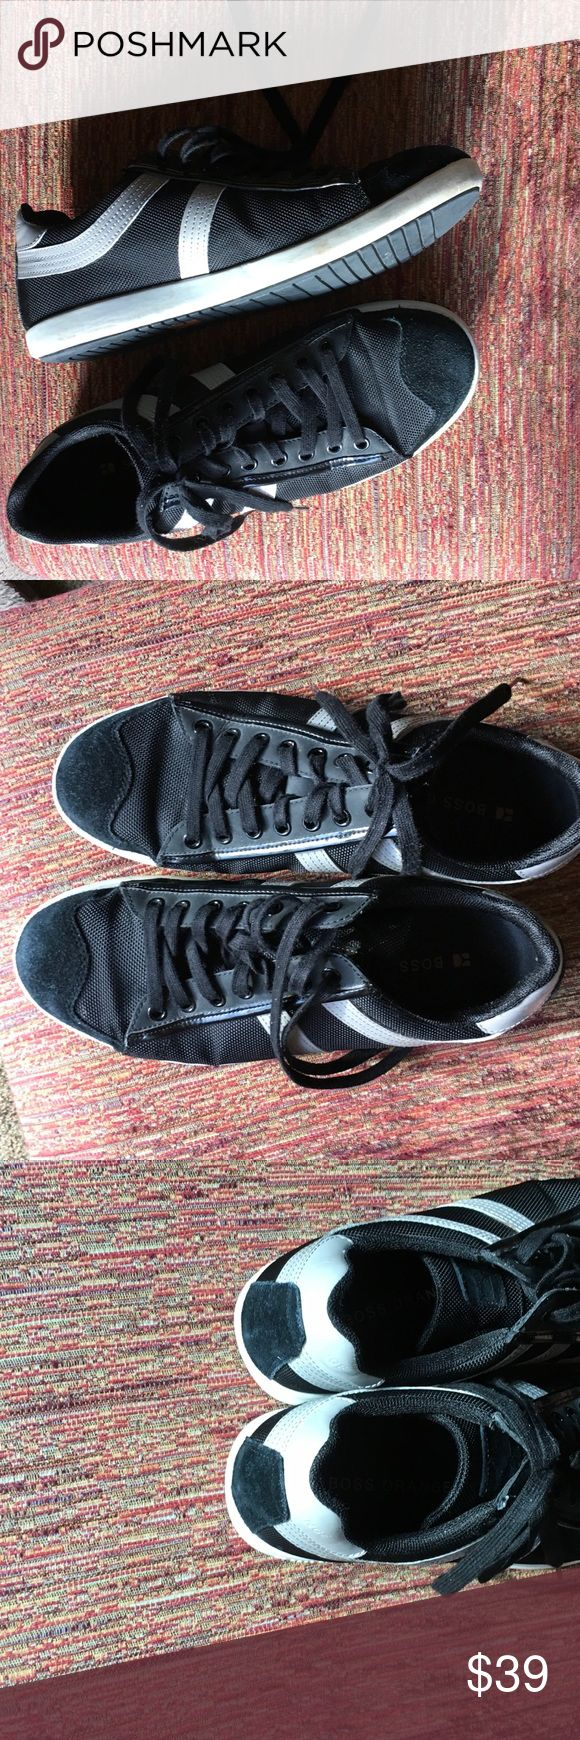 New Listing Boss Orange sneakers EUE 42.  Men's 9 or women's 11.5.  Very nice black suede and mesh sneakers.  Excellent condition..only worn a few times.  110407 Hugo Boss Shoes Sneakers